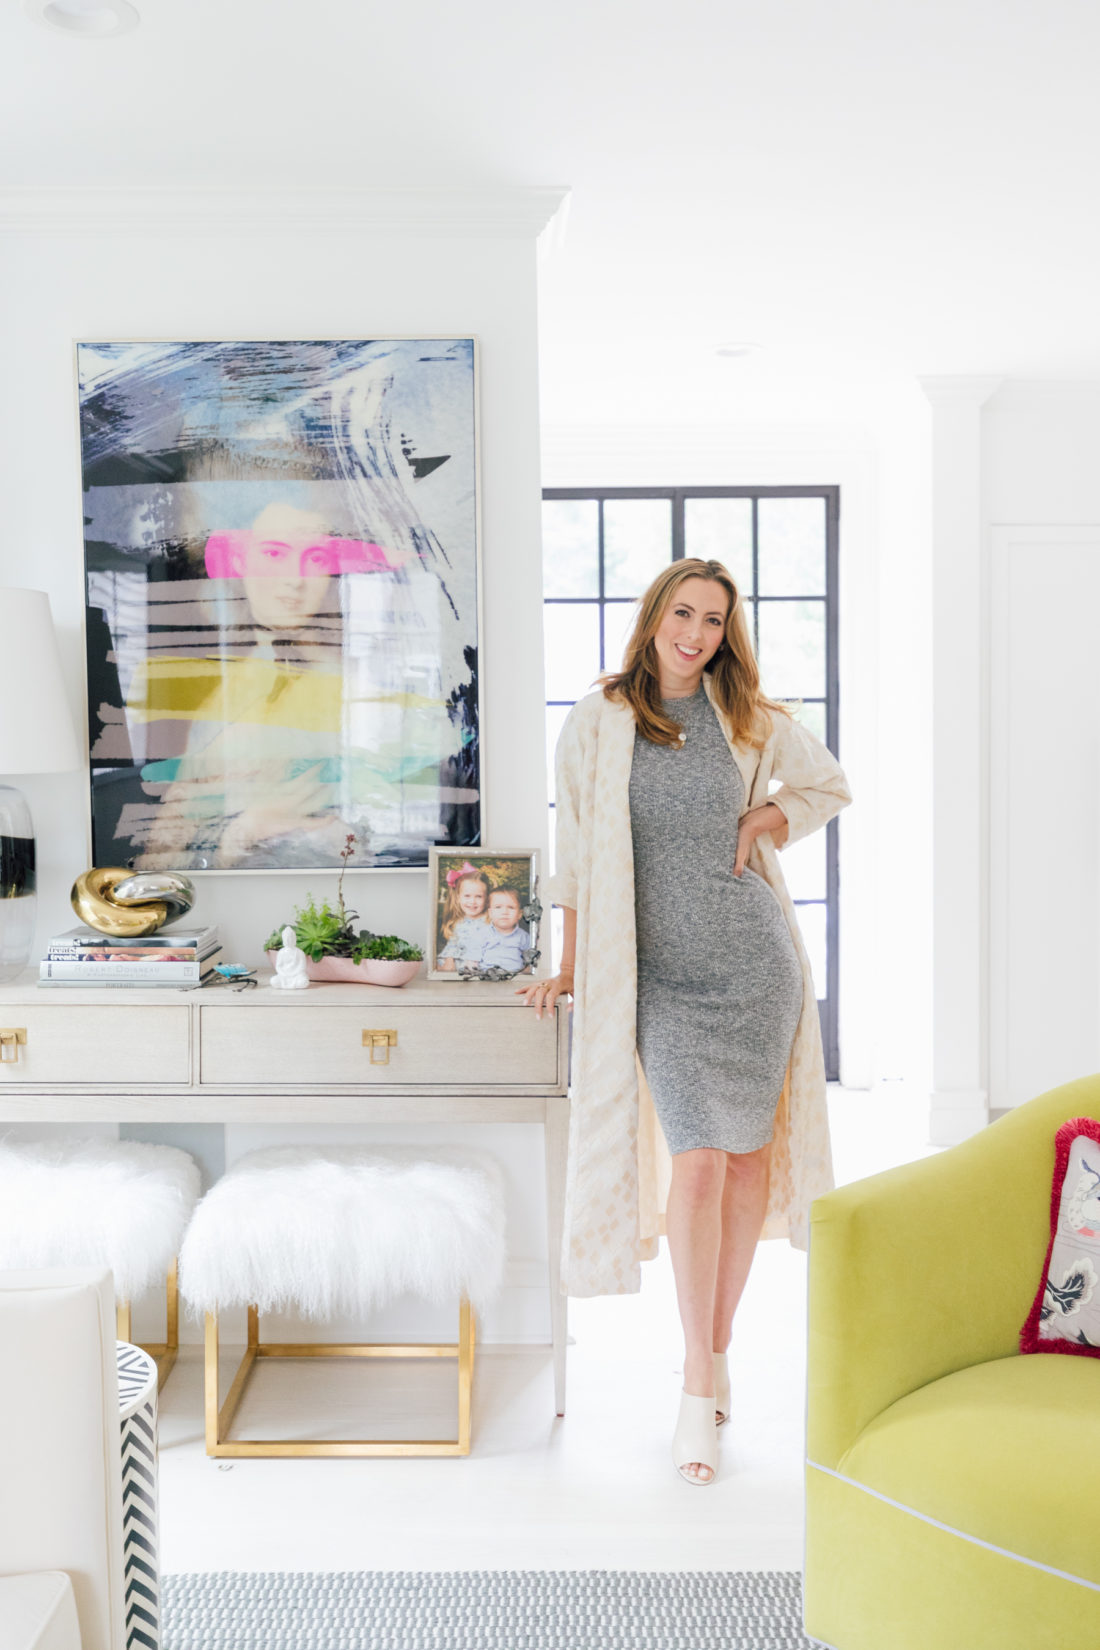 Eva Amurri Martino unveils her brand new living room